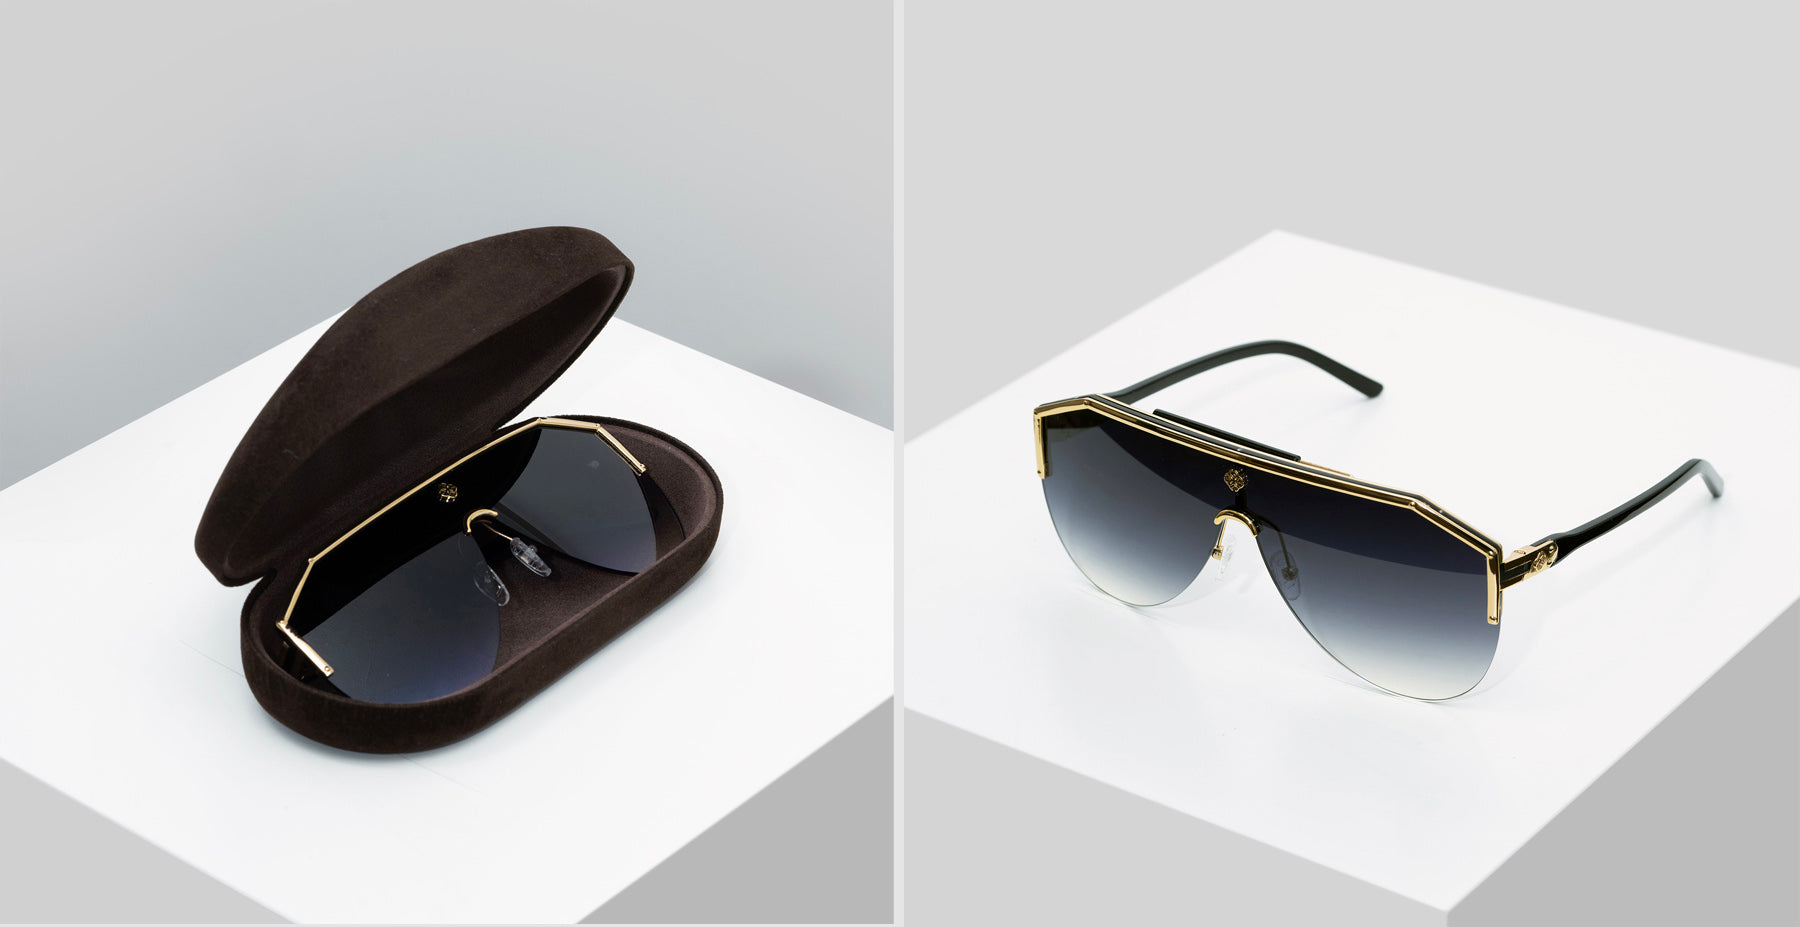 Rockstar Sunglasses by Golden Concept